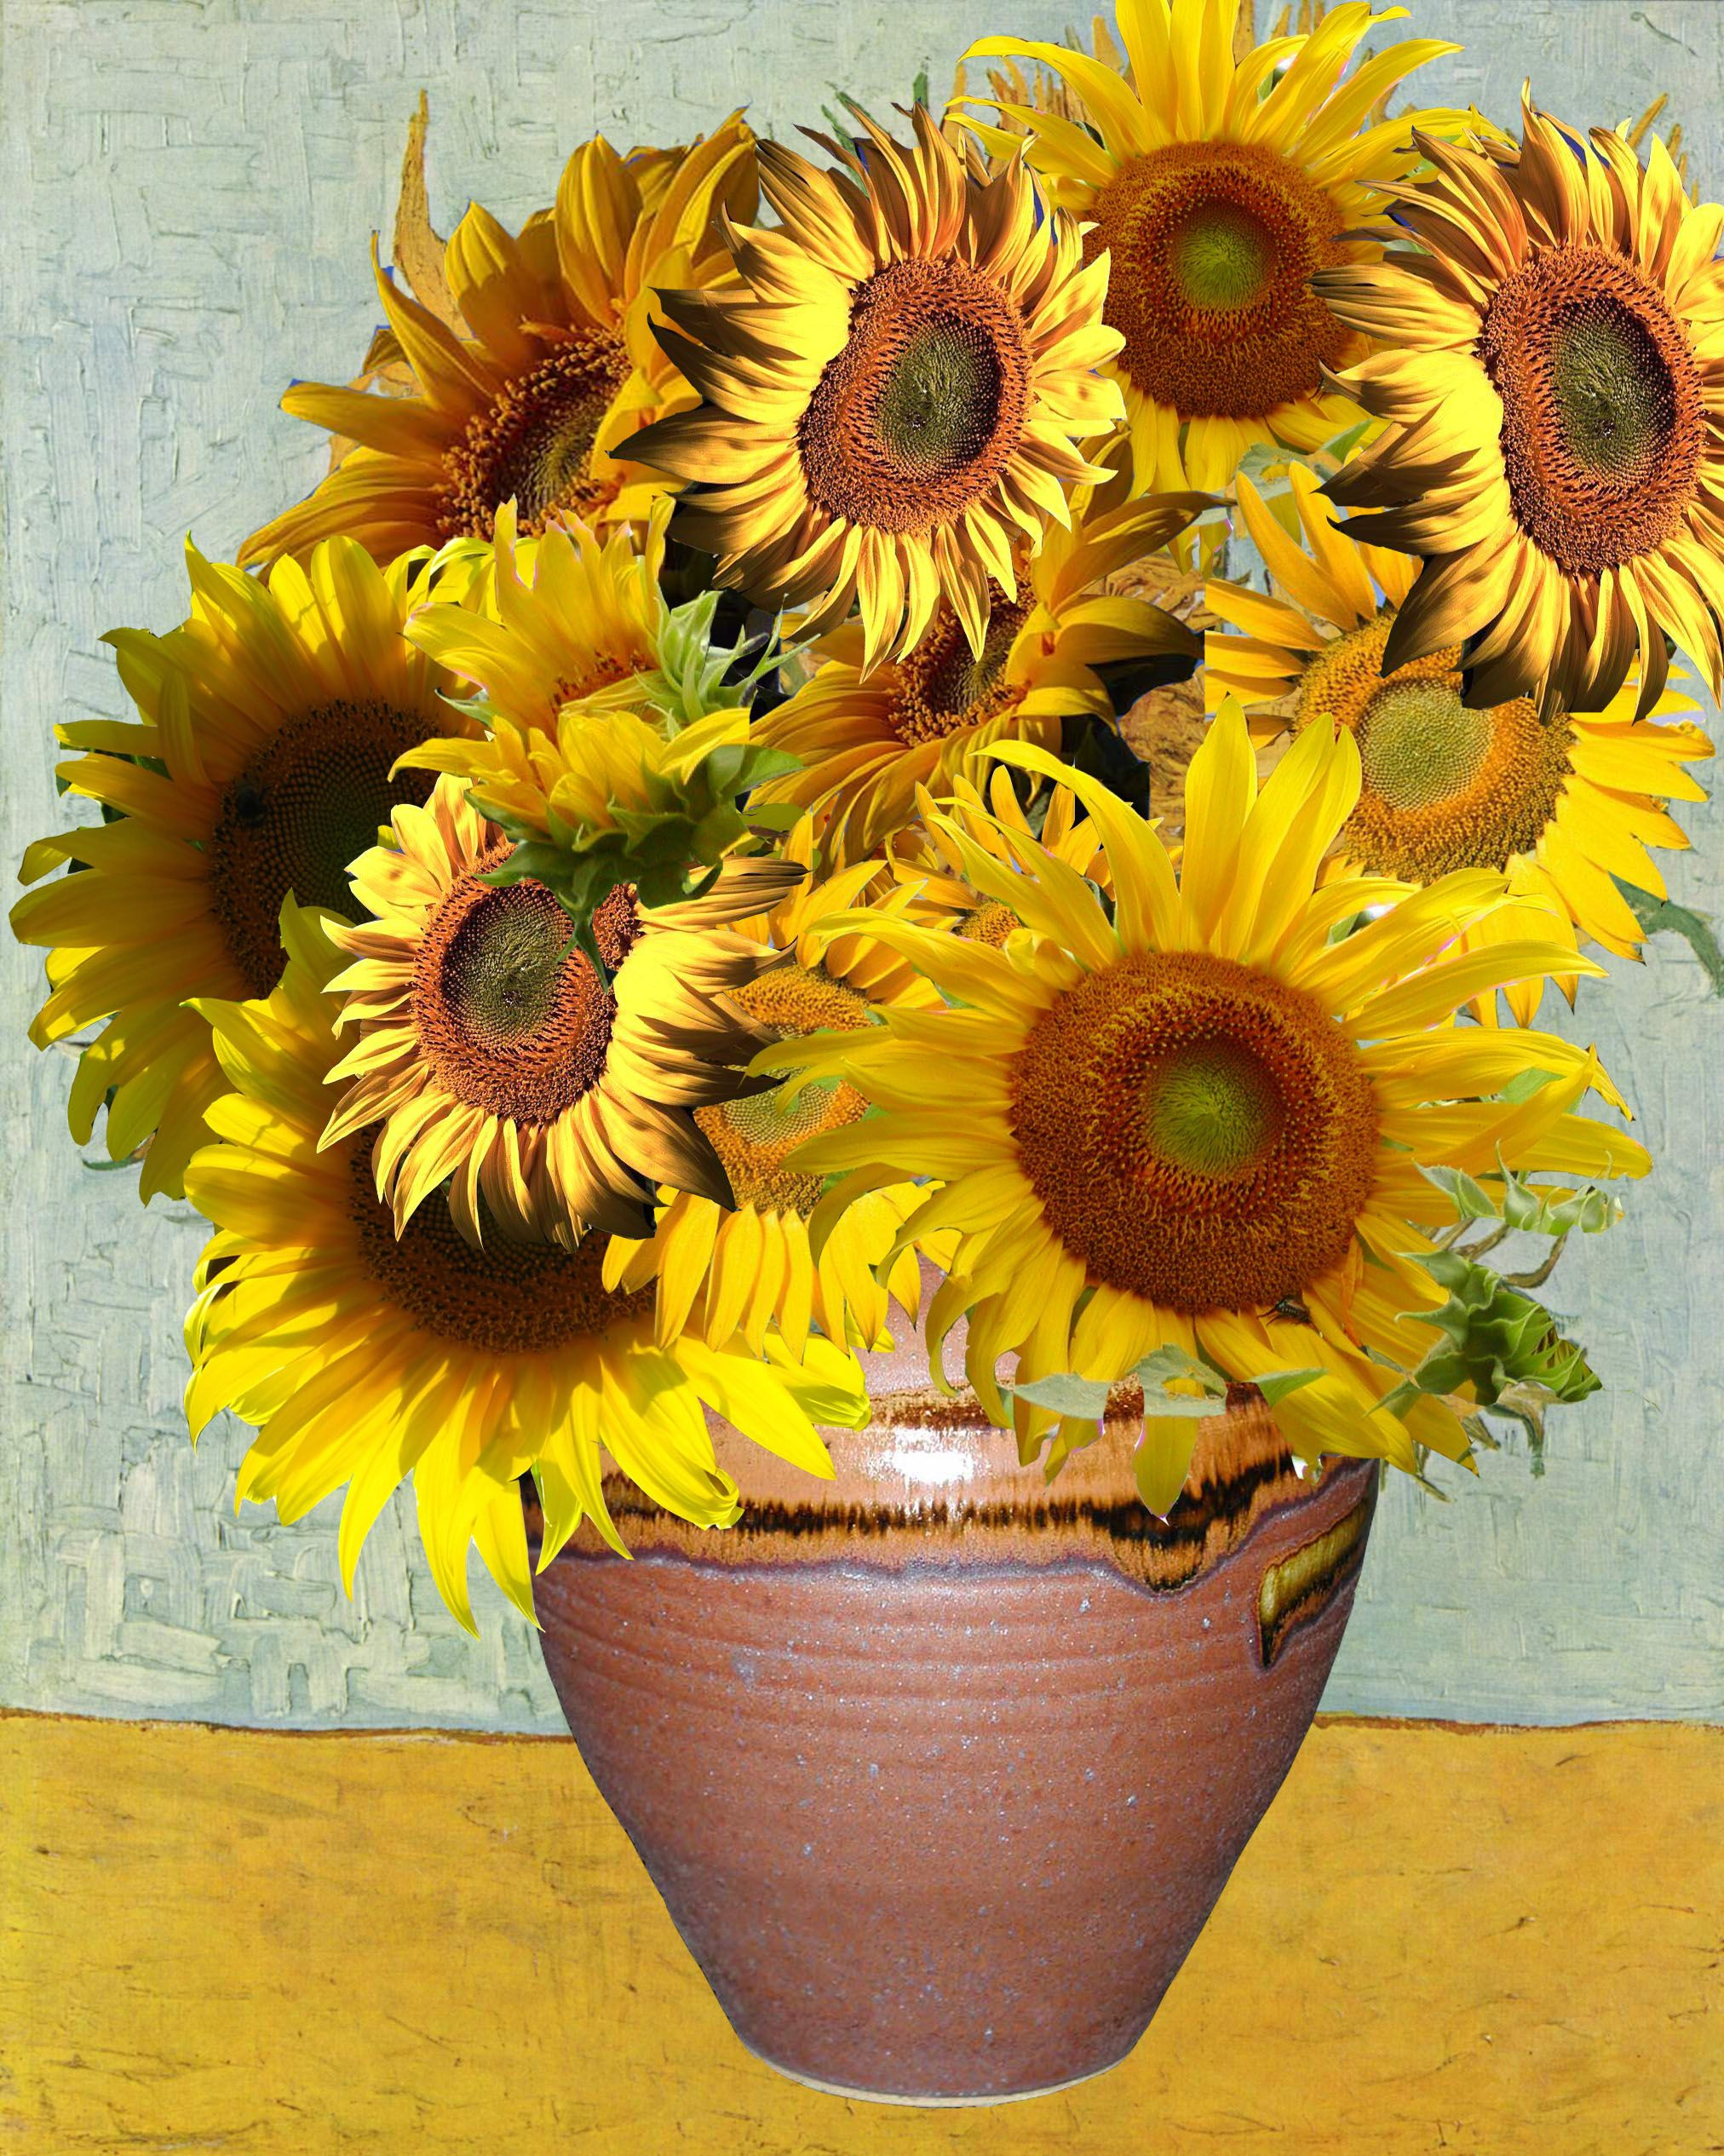 Vincent Van Gogh Paintings Sunflowers Van Gogh Sunflowers Sunflowers Van Gogh And Vans